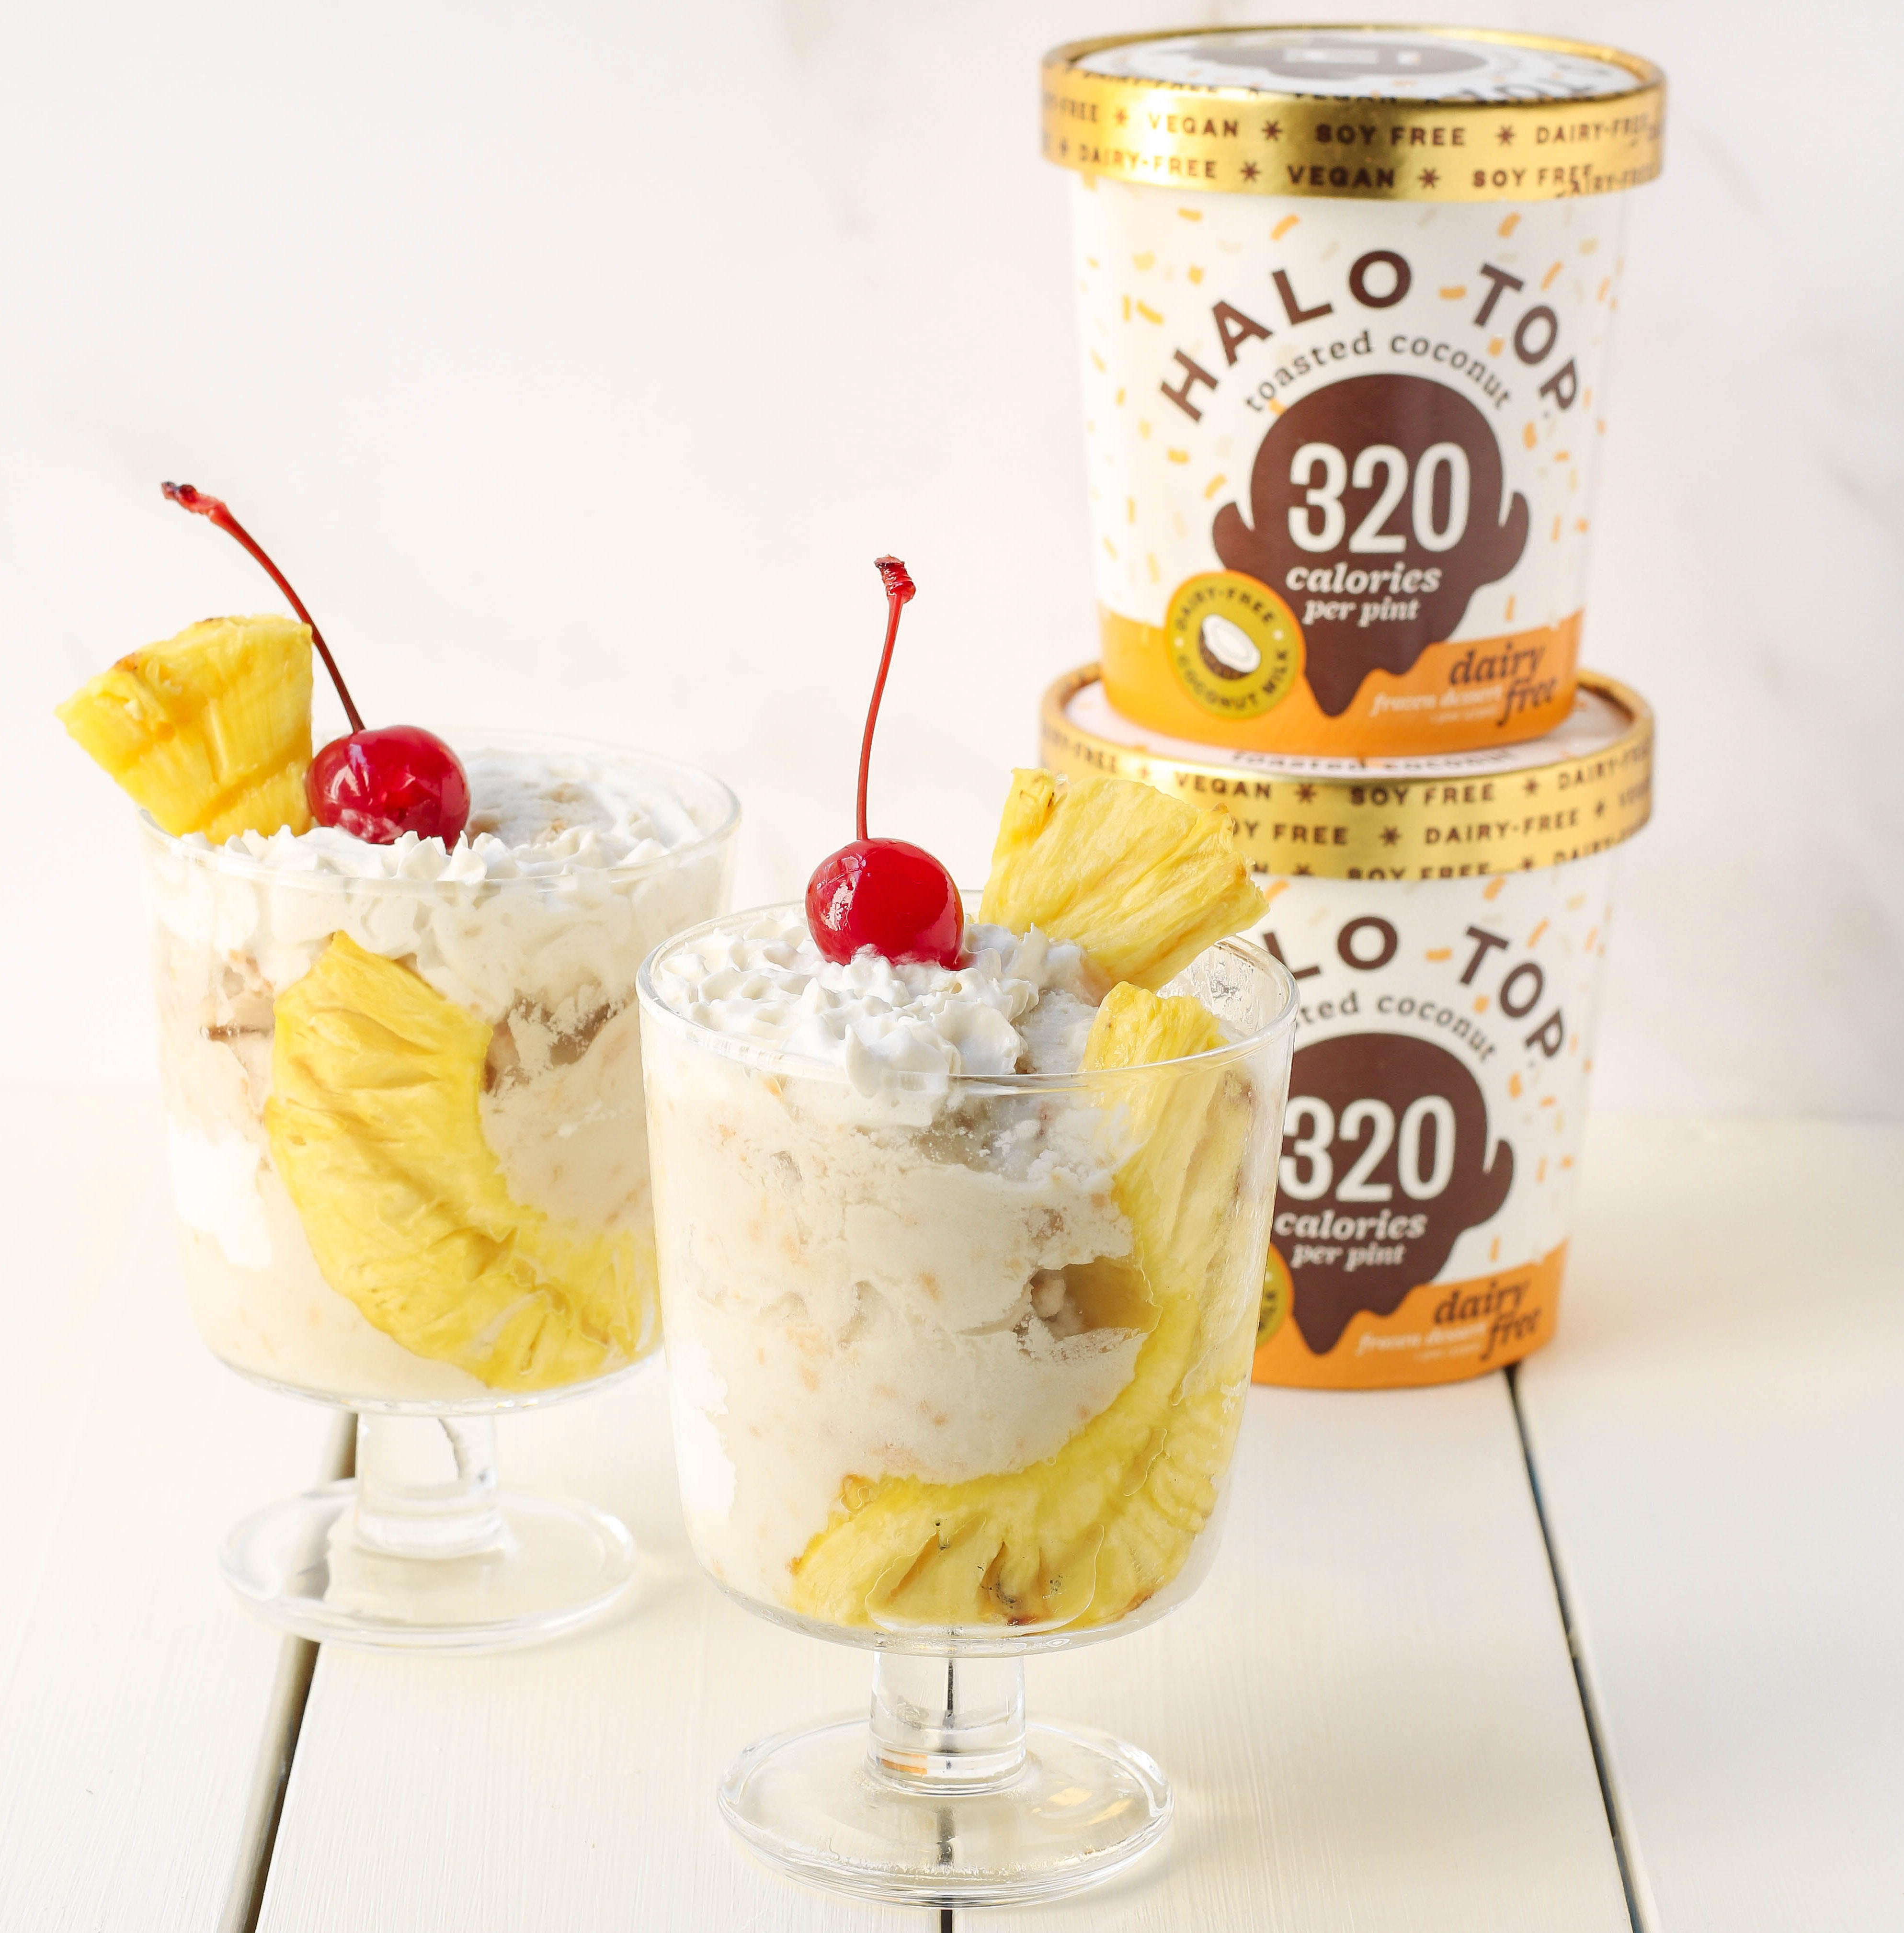 Pina Colada Sundae Cups with two Toasted Coconut Halo Top pints stacked